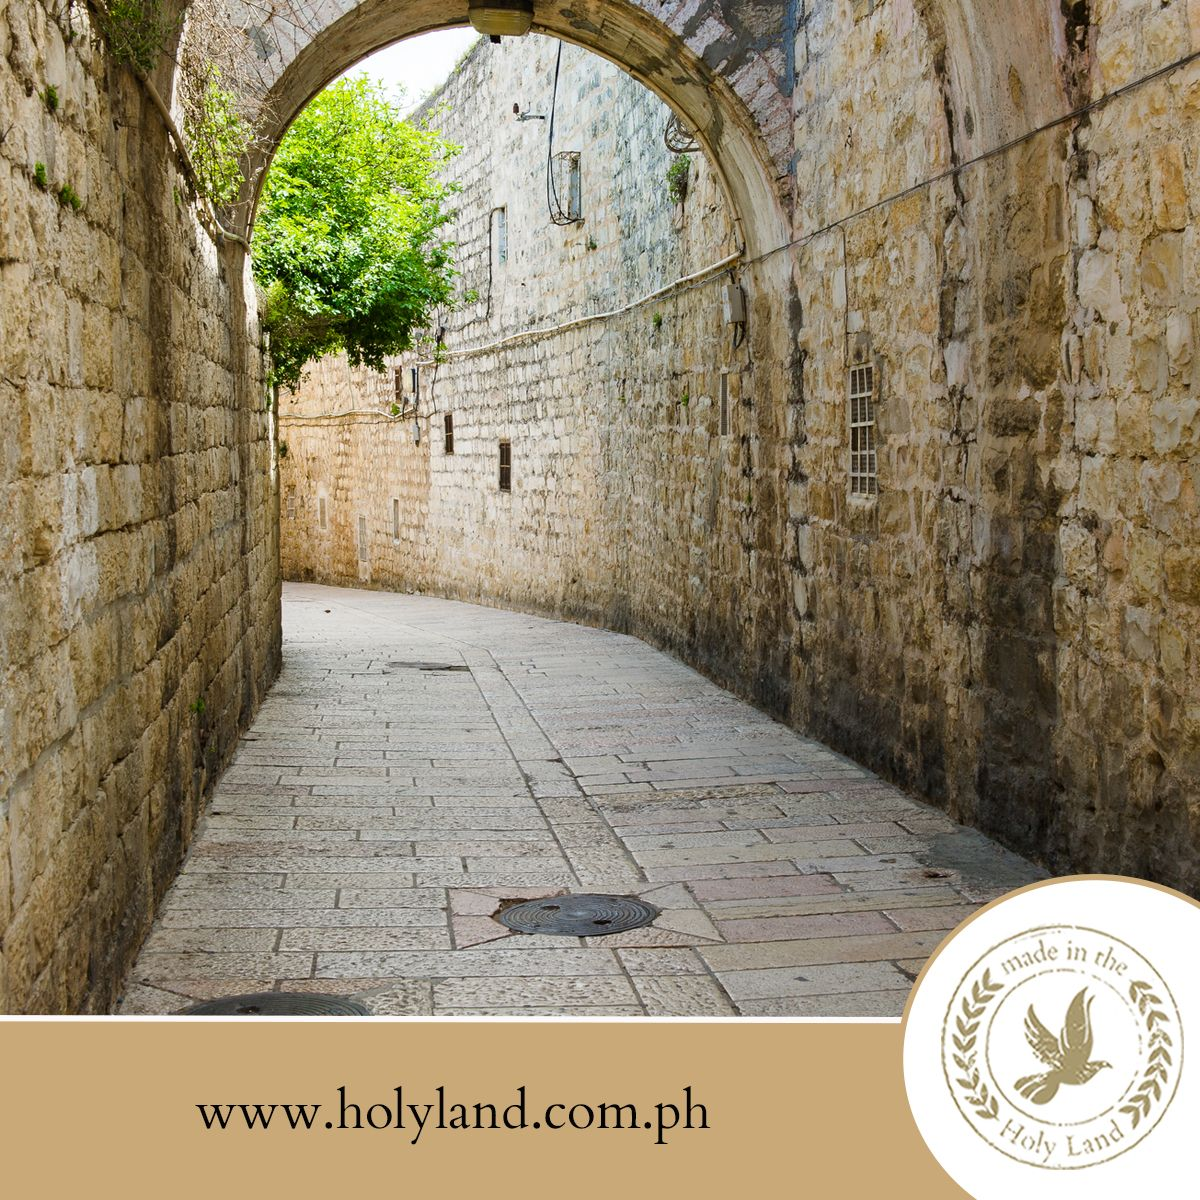 FACT ABOUT THE HOLY LAND: The Via Dolorosa is a street, in two parts, within the Old City of Jerusalem, held to be the path that Jesus walked, carrying his cross, on the way to his crucifixion, and ultimately, his bodily resurrection from the dead three days later.